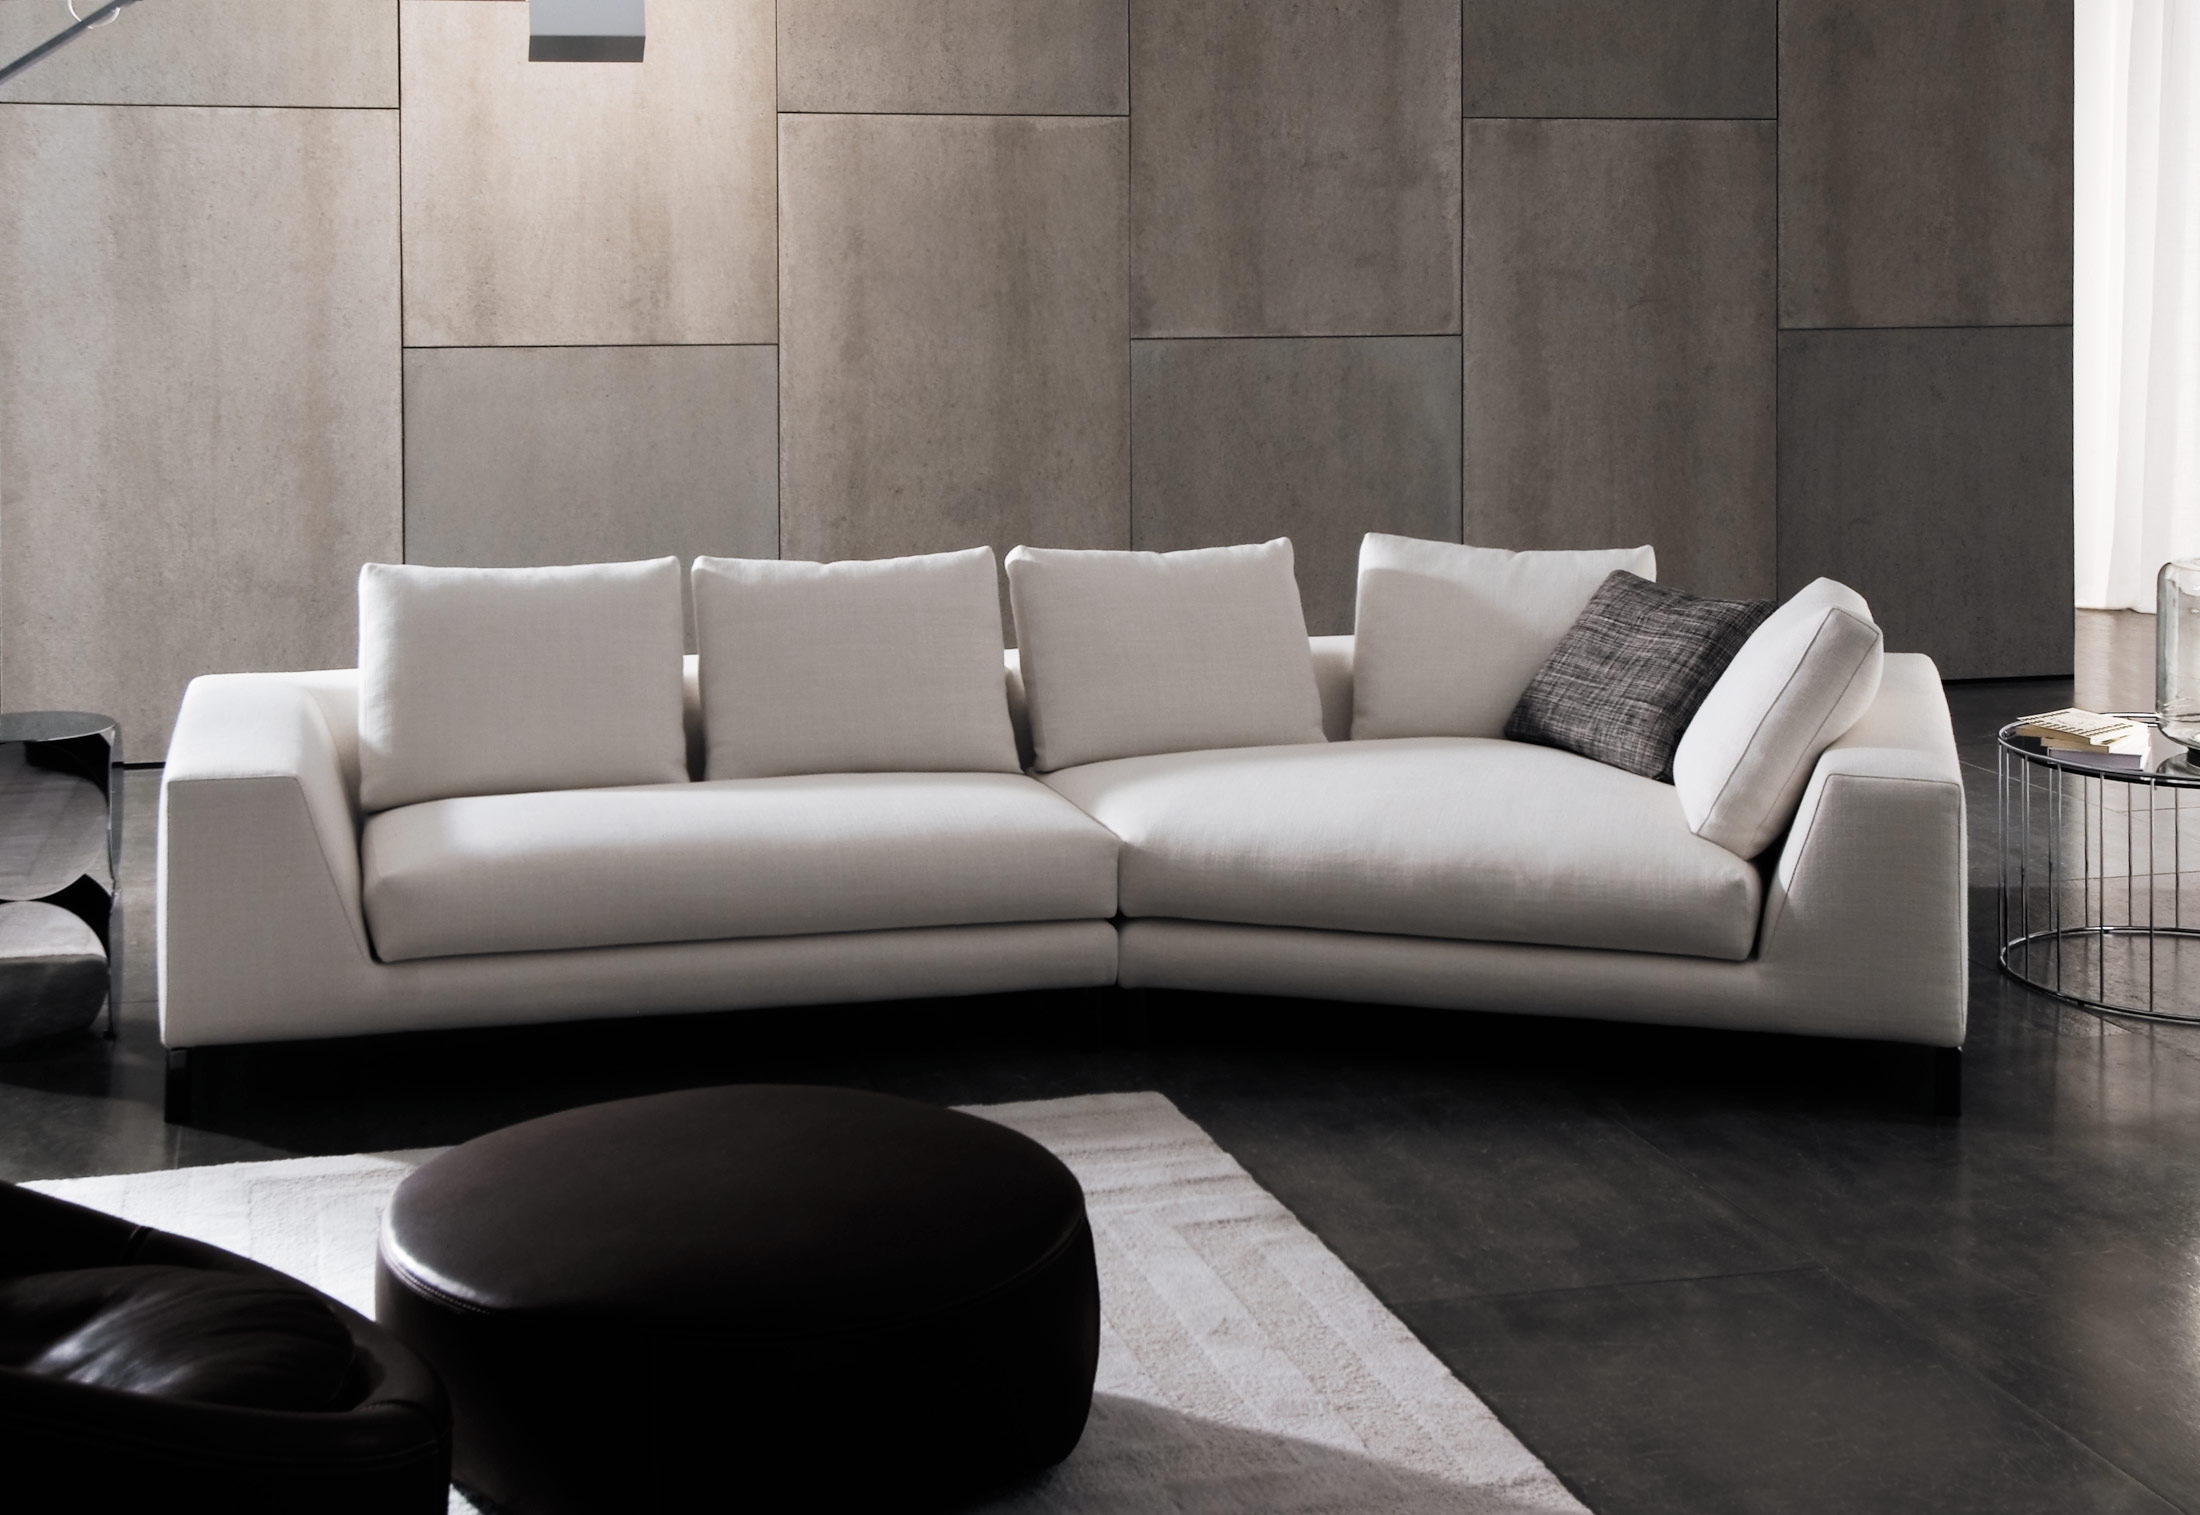 Stylepark In Best And Newest Hamilton Sectional Sofas (View 20 of 20)